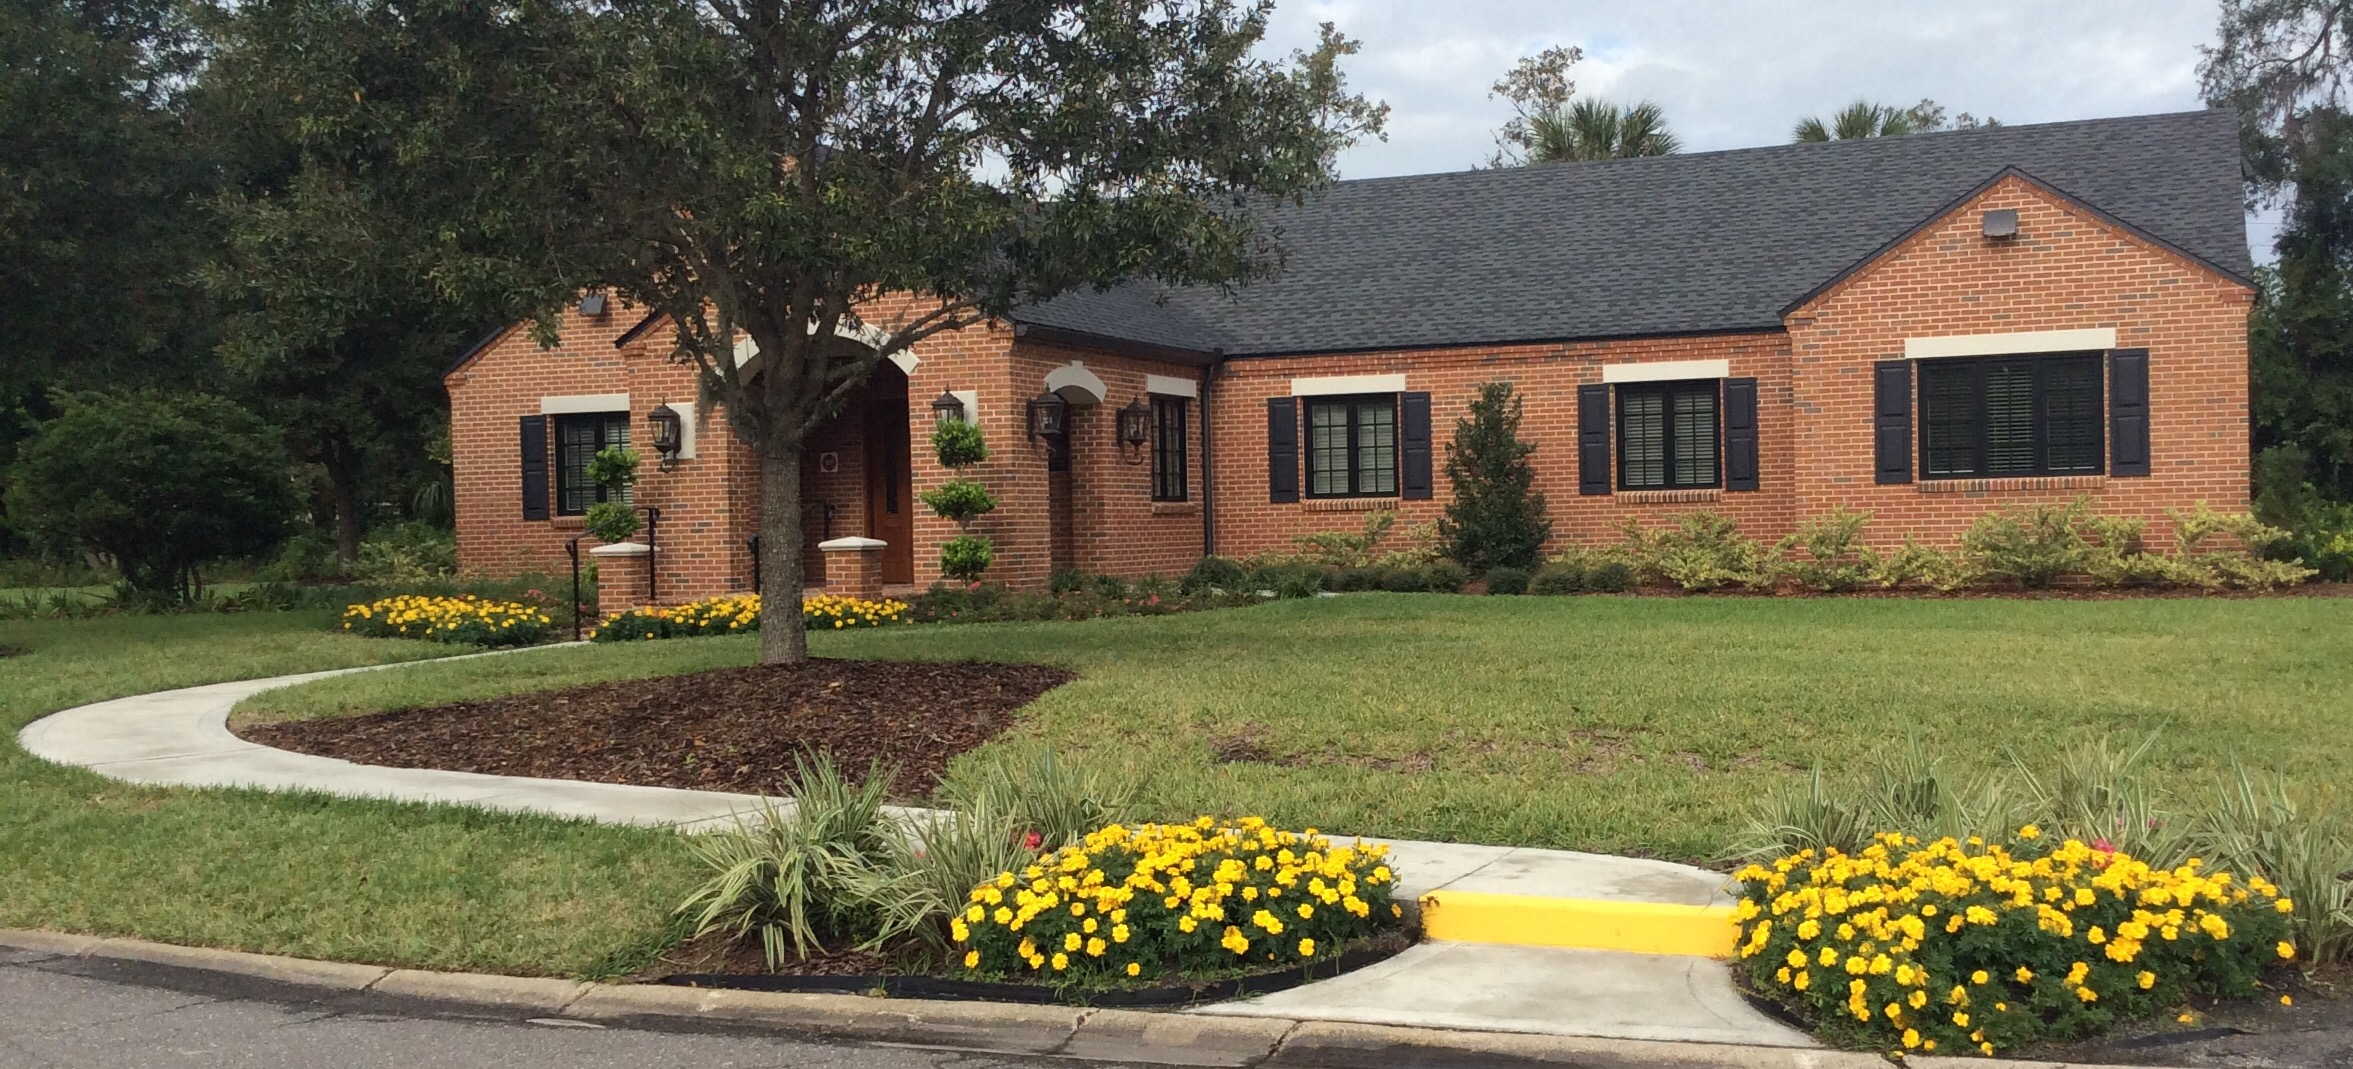 Evergreen Funeral Home and Crematory 4535 N Main St, Jacksonville ...